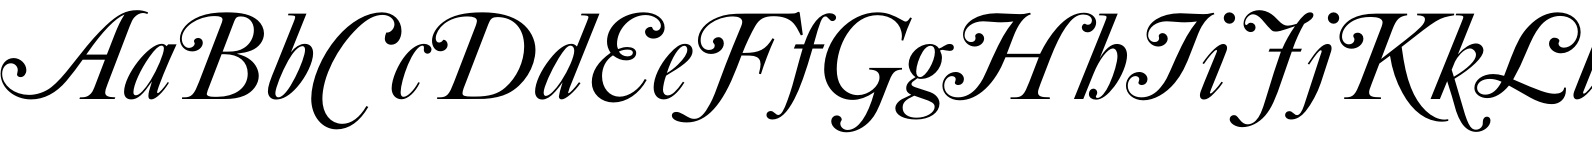 Caslon No540 Swash D Regular Italic Font